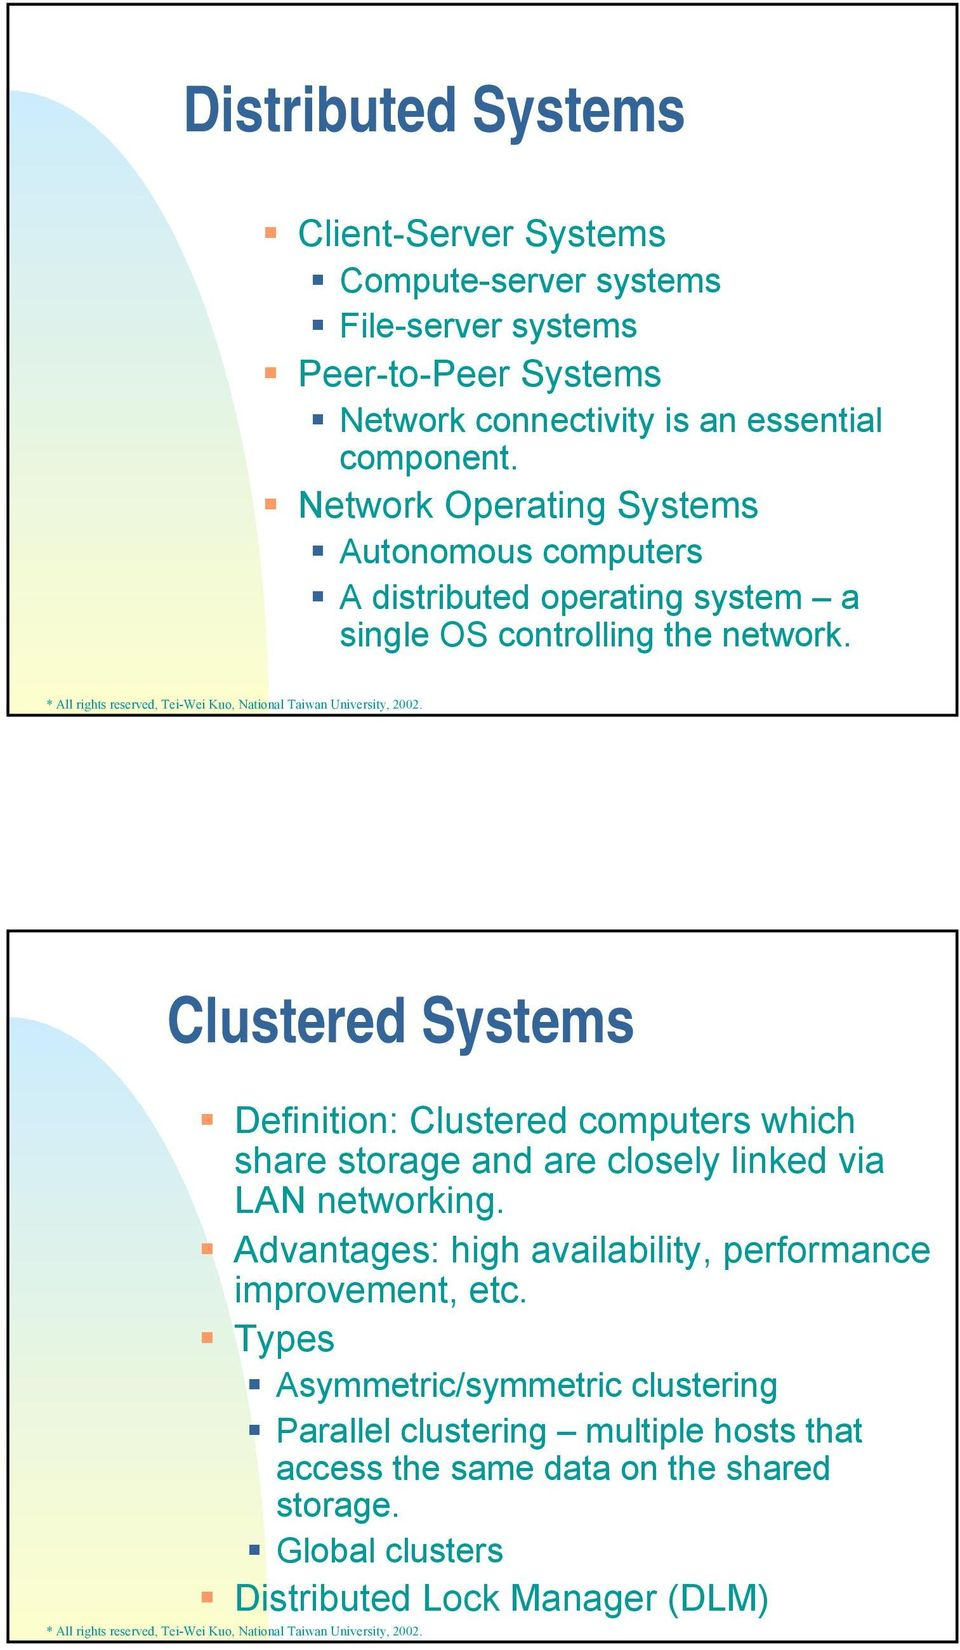 Clustered Systems Definition: Clustered computers which share storage and are closely linked via LAN networking.